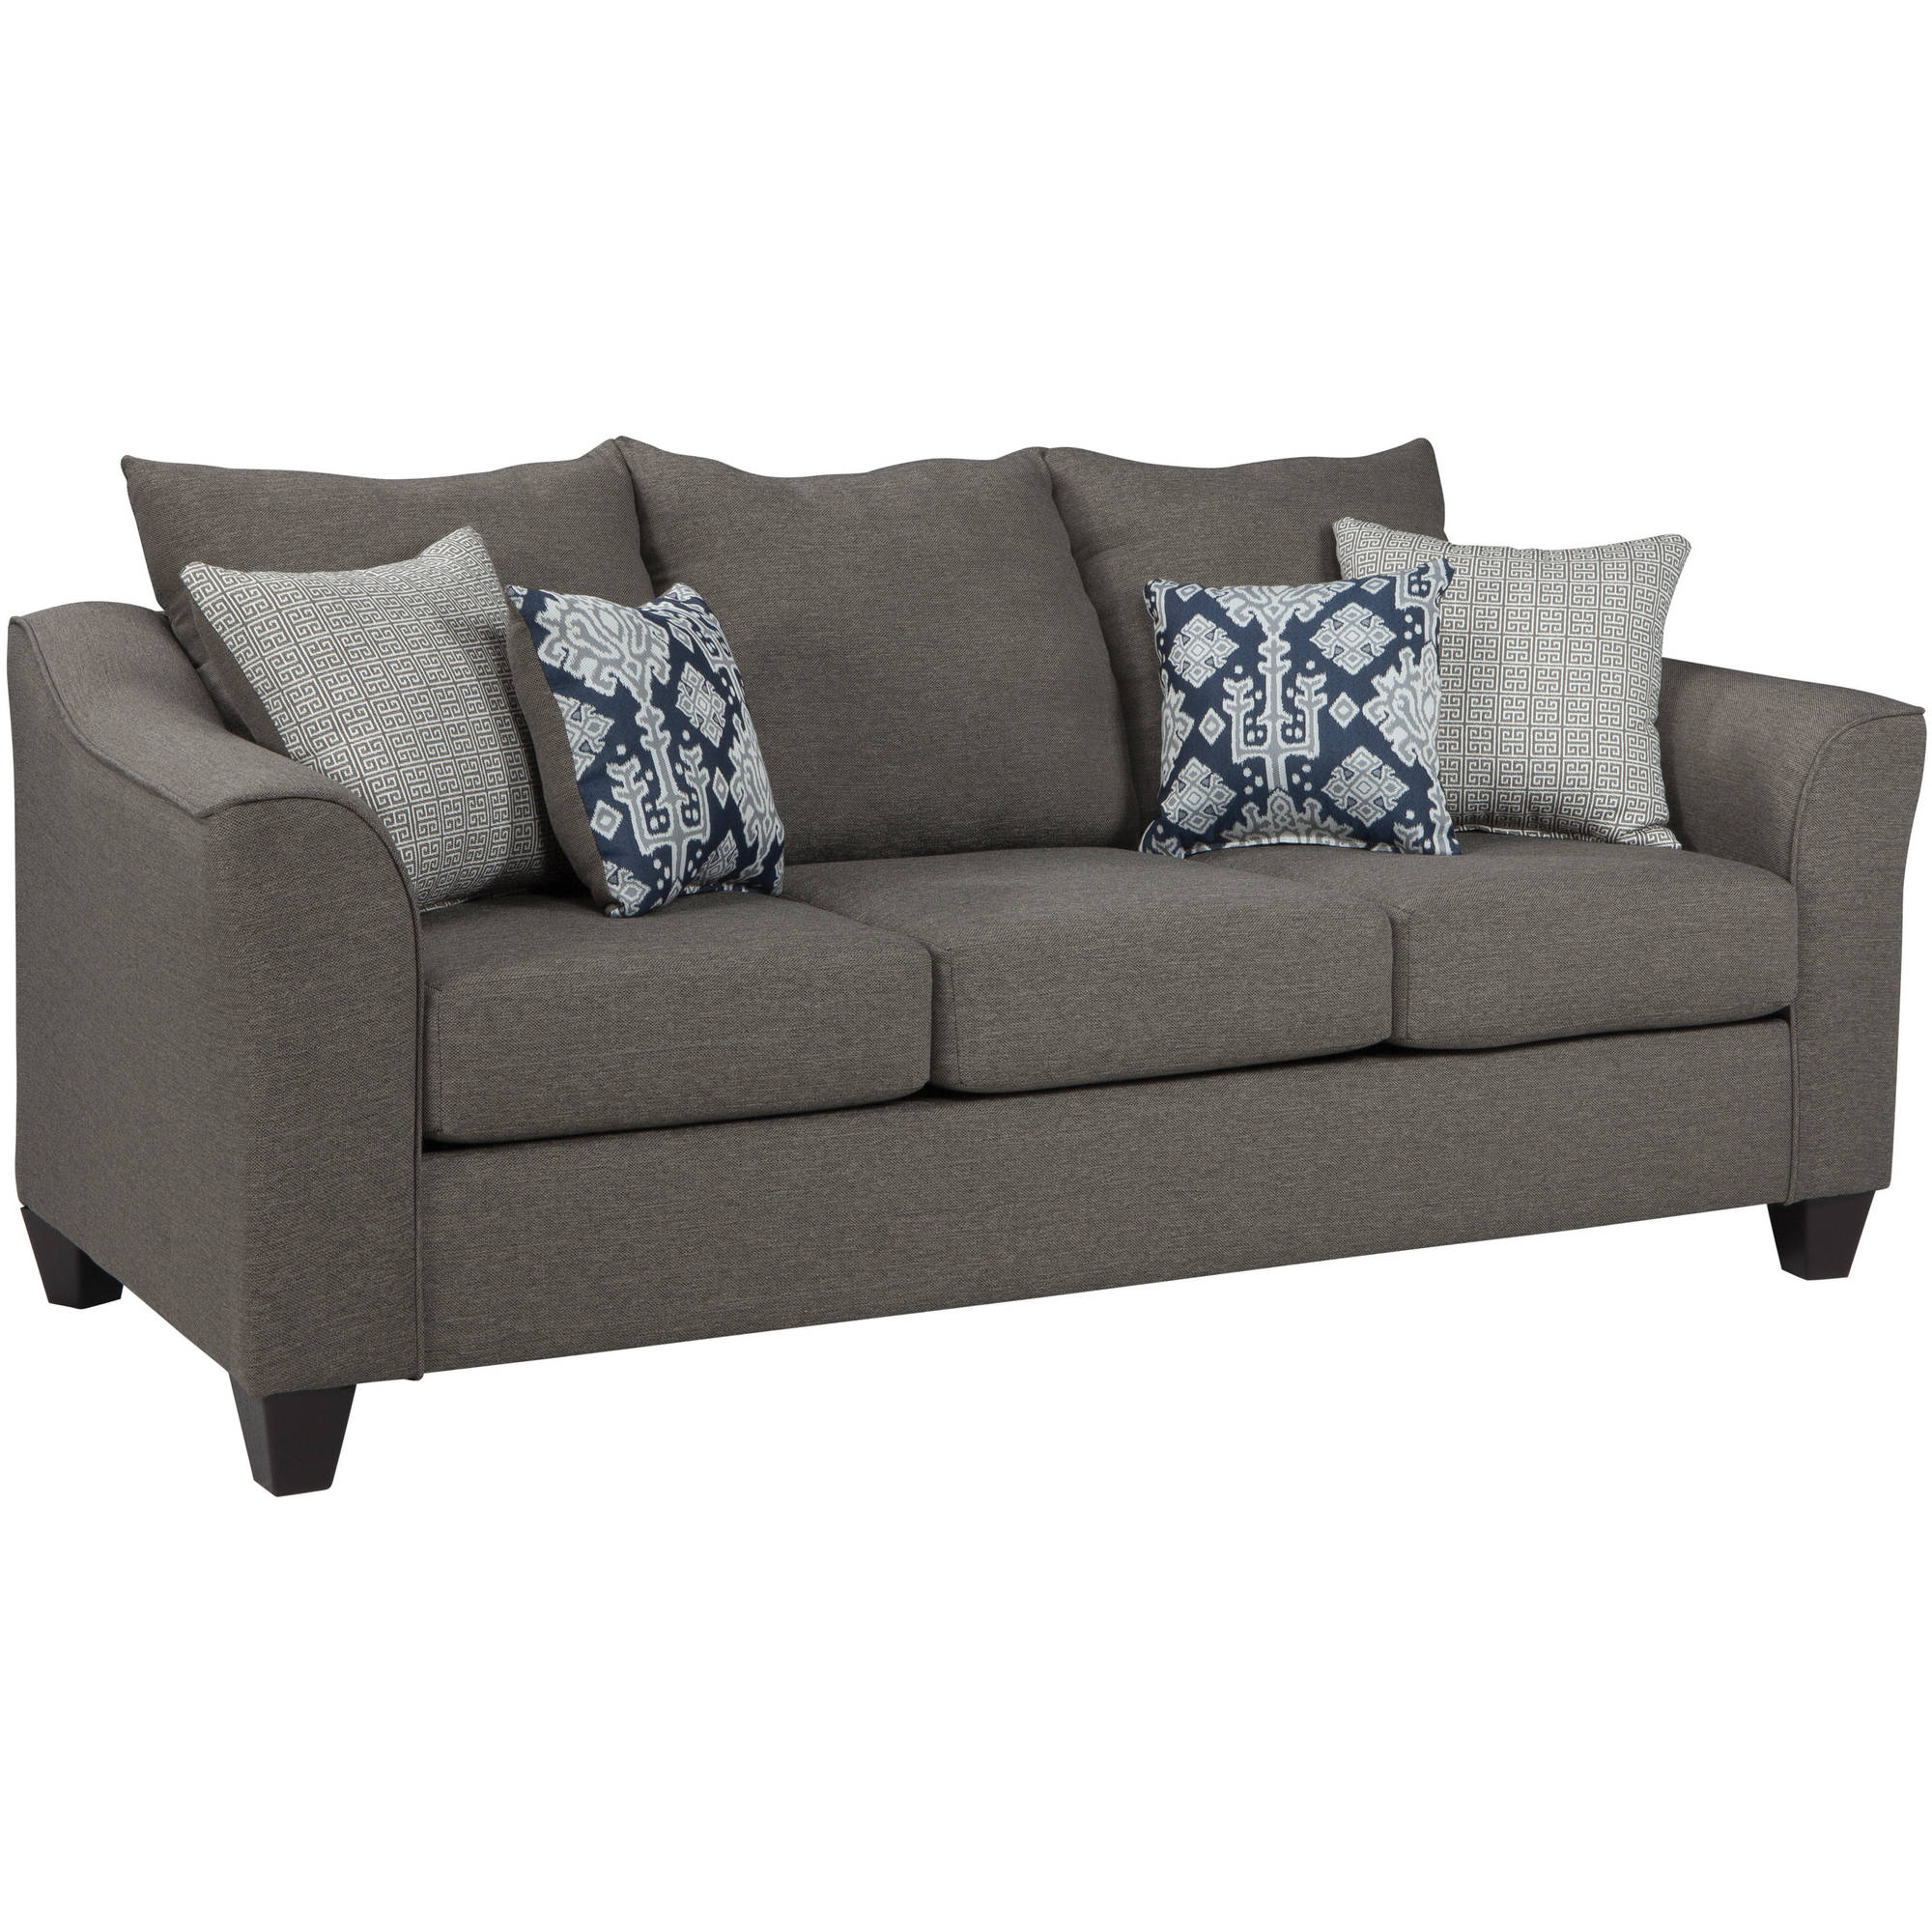 Coaster Company Salizar Sofa, Grey